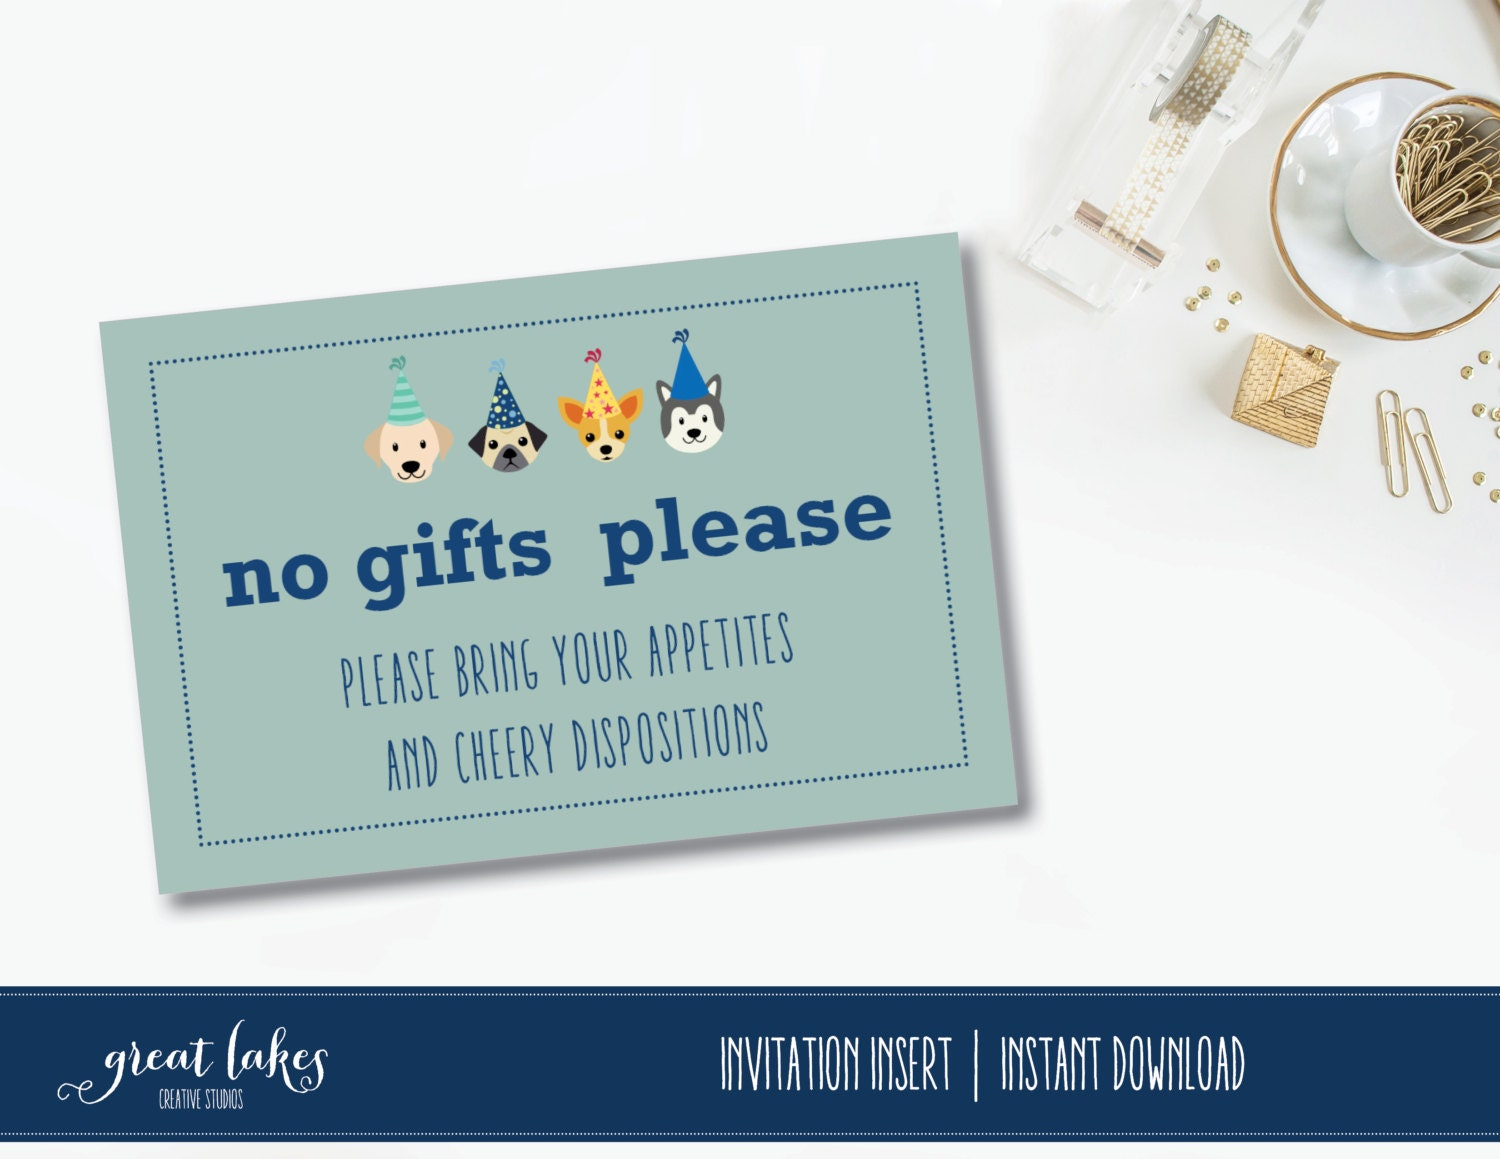 etiquette birthday party invitations no gifts cogimbous With wedding invitation etiquette no gifts please